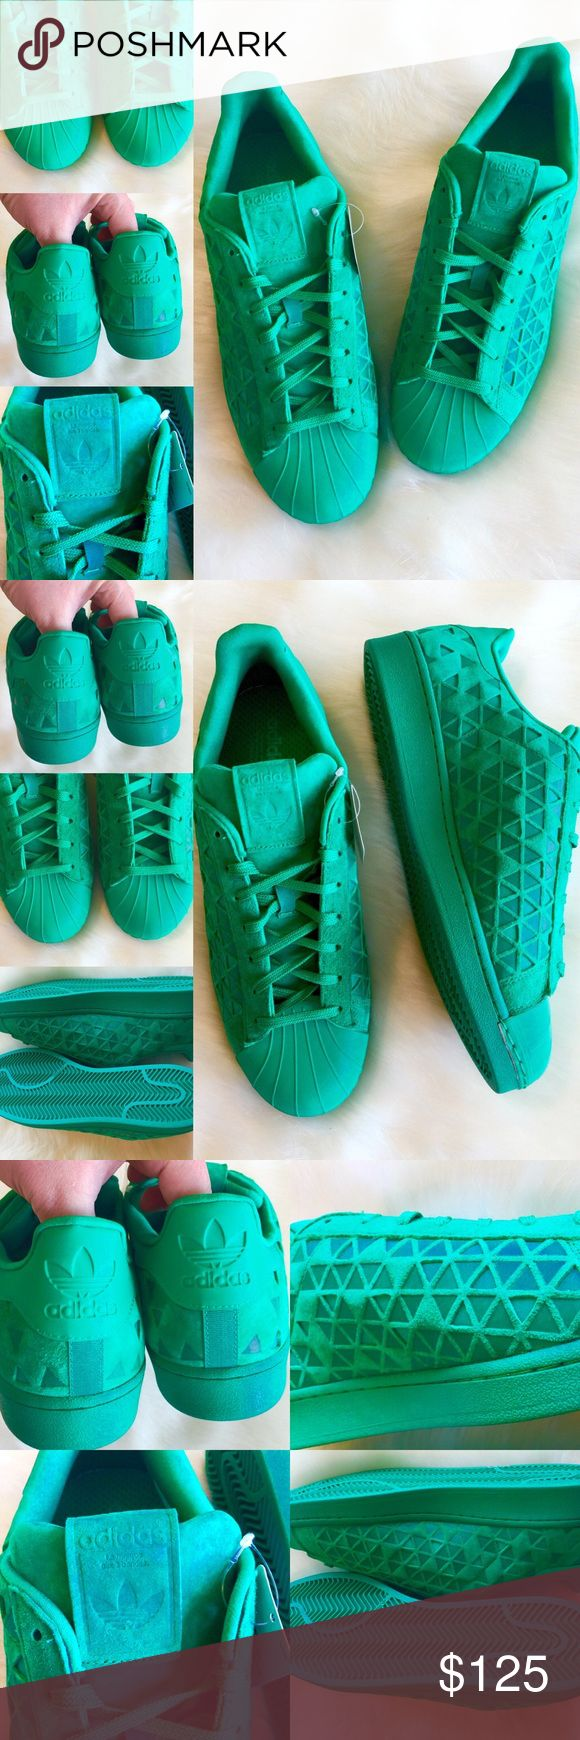 BRAND NEW! 🌟 Mens ADIDAS La Marque 3 Bandes, 12 All green and intricate detailing!  Awesome shoes!!!  Brand new with tag!  Men's size 12!  🌟🌟🌟 adidas Shoes